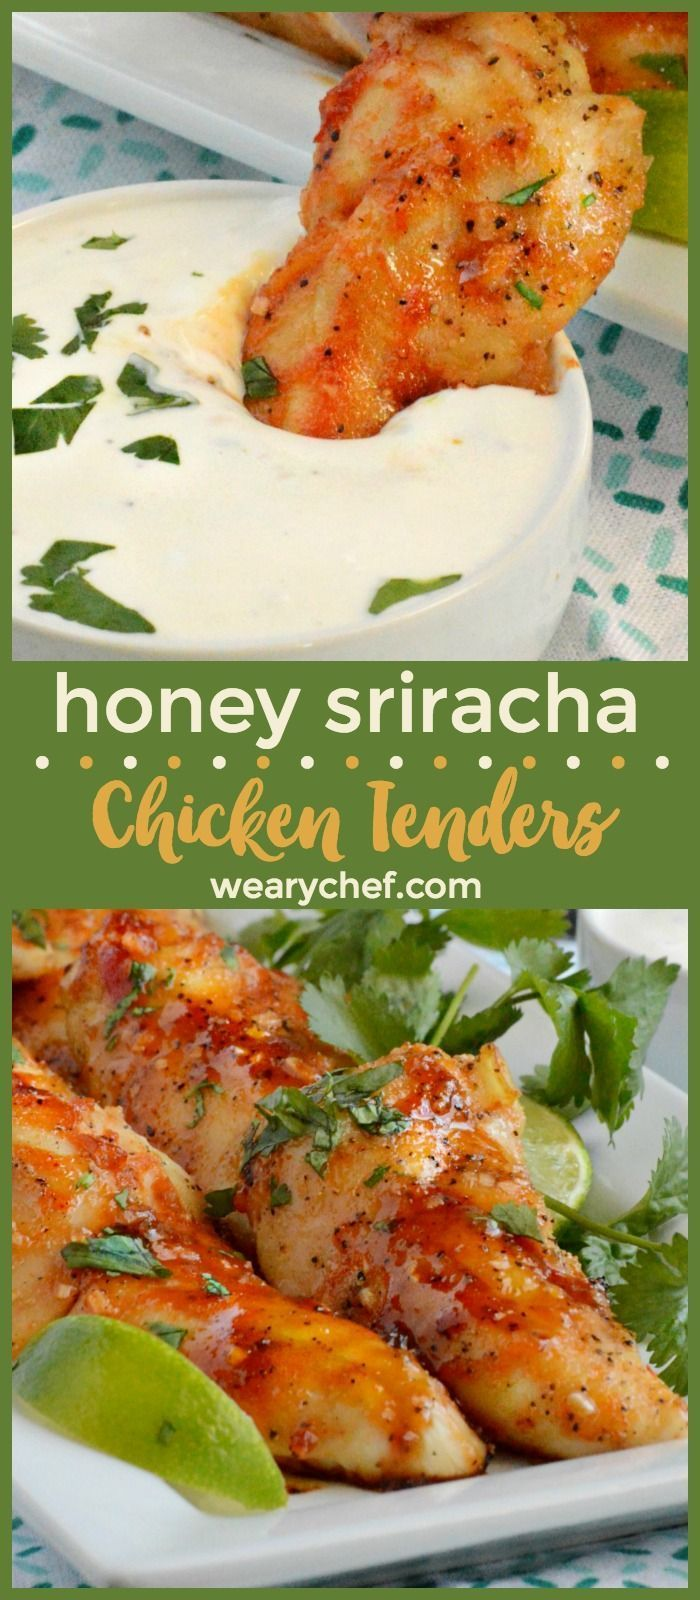 Honey Sriracha Chicken Tenders are a perfect family meal or game day snack. Serve them with homemade ranch for dipping! You'll love this quick and easy chicken recipe!